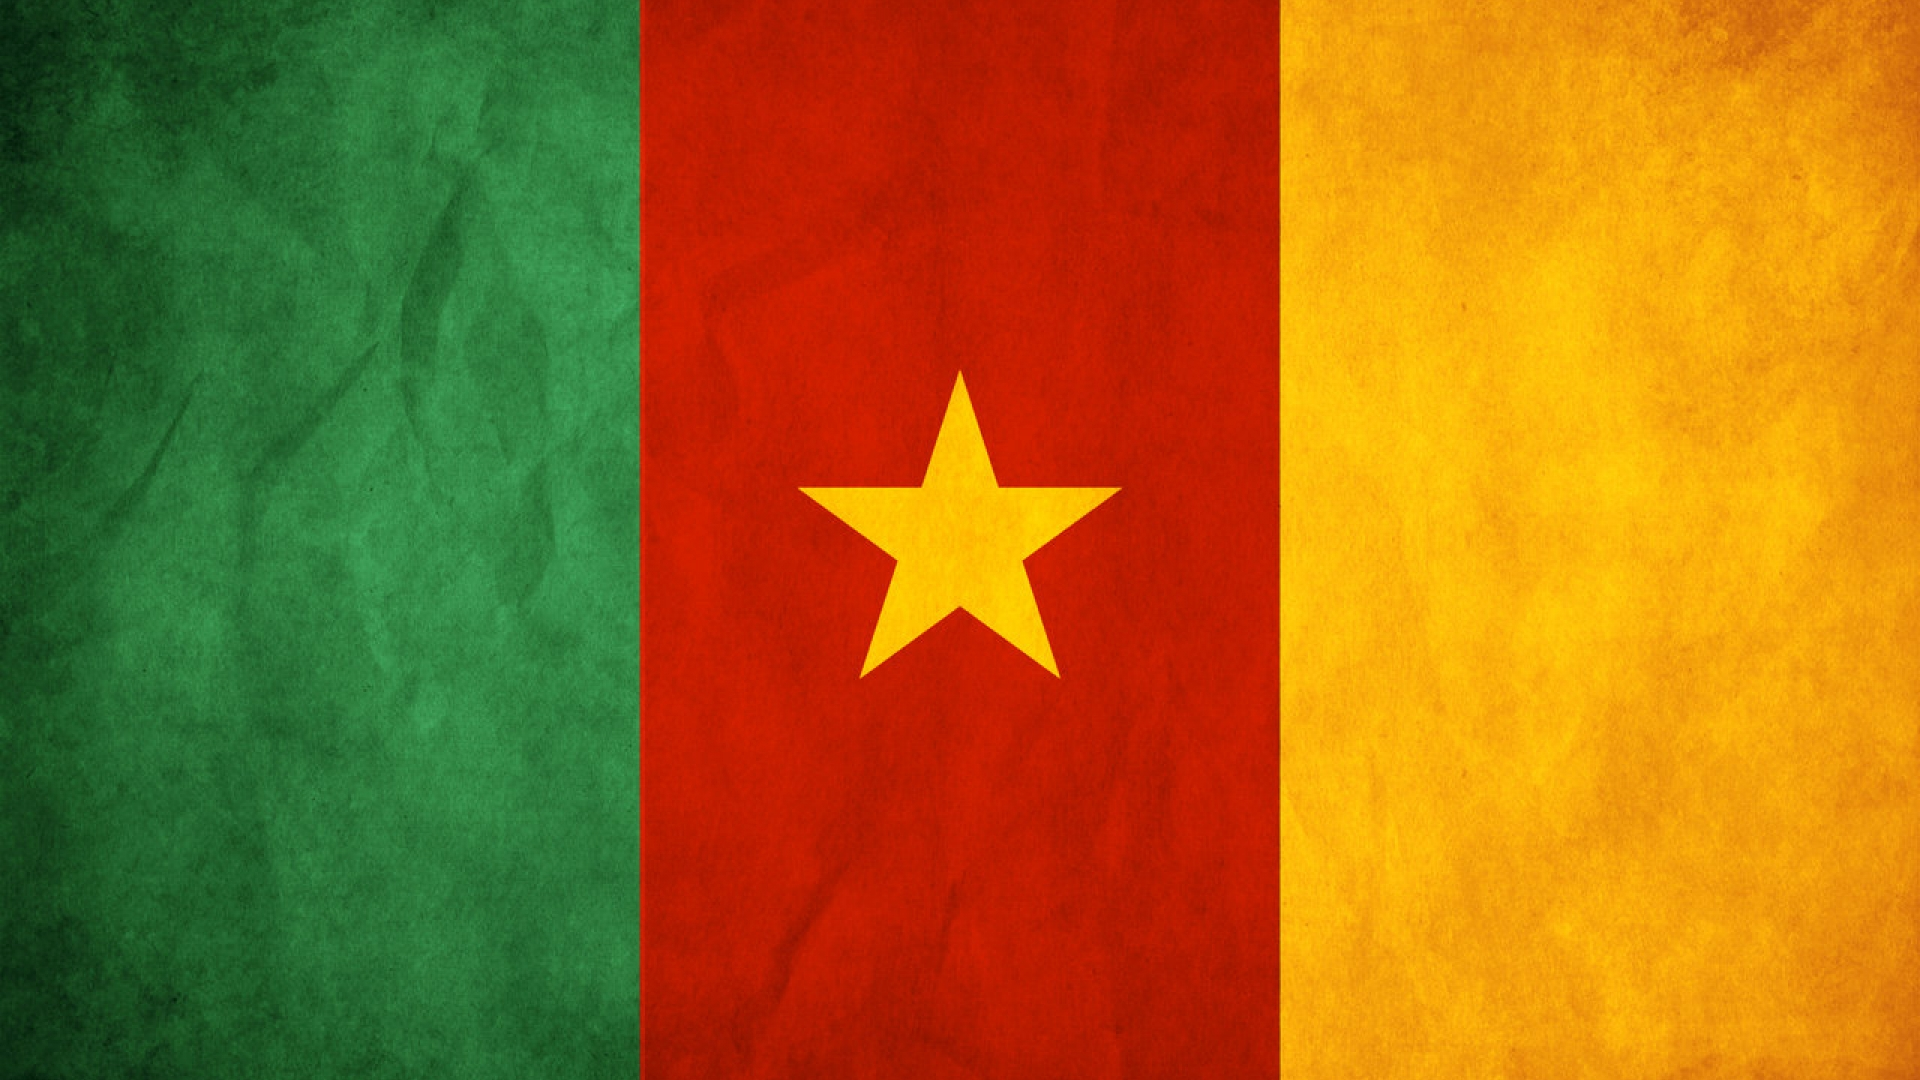 Cameroon flag wallpaper   HD Wallpapers 1920x1080